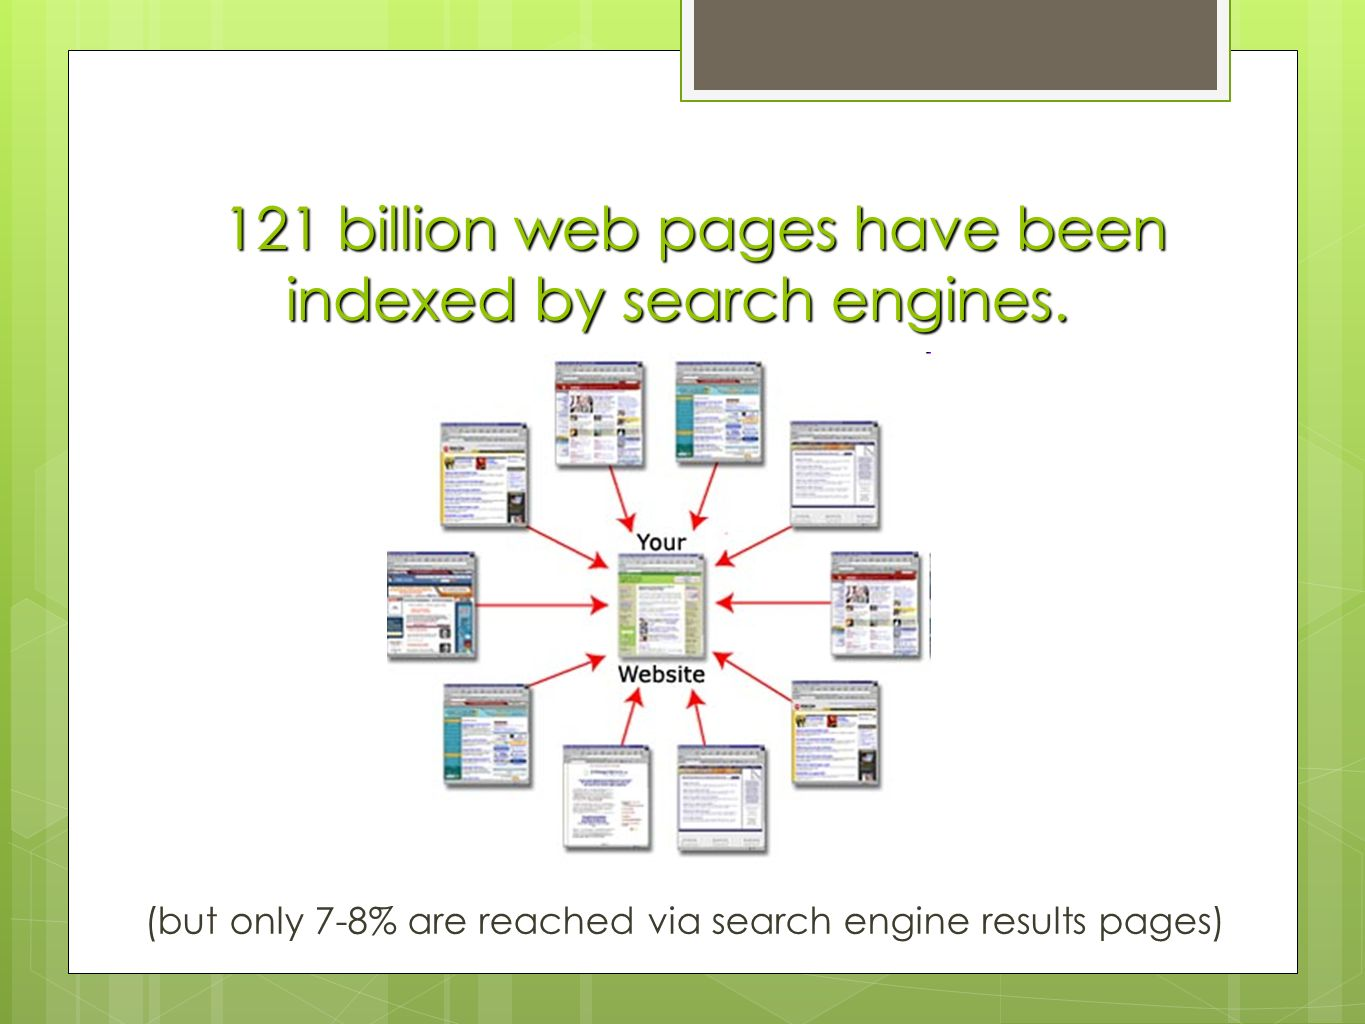 121 billion web pages have been indexed by search engines. (but only 7-8% are reached via search engine results pages)